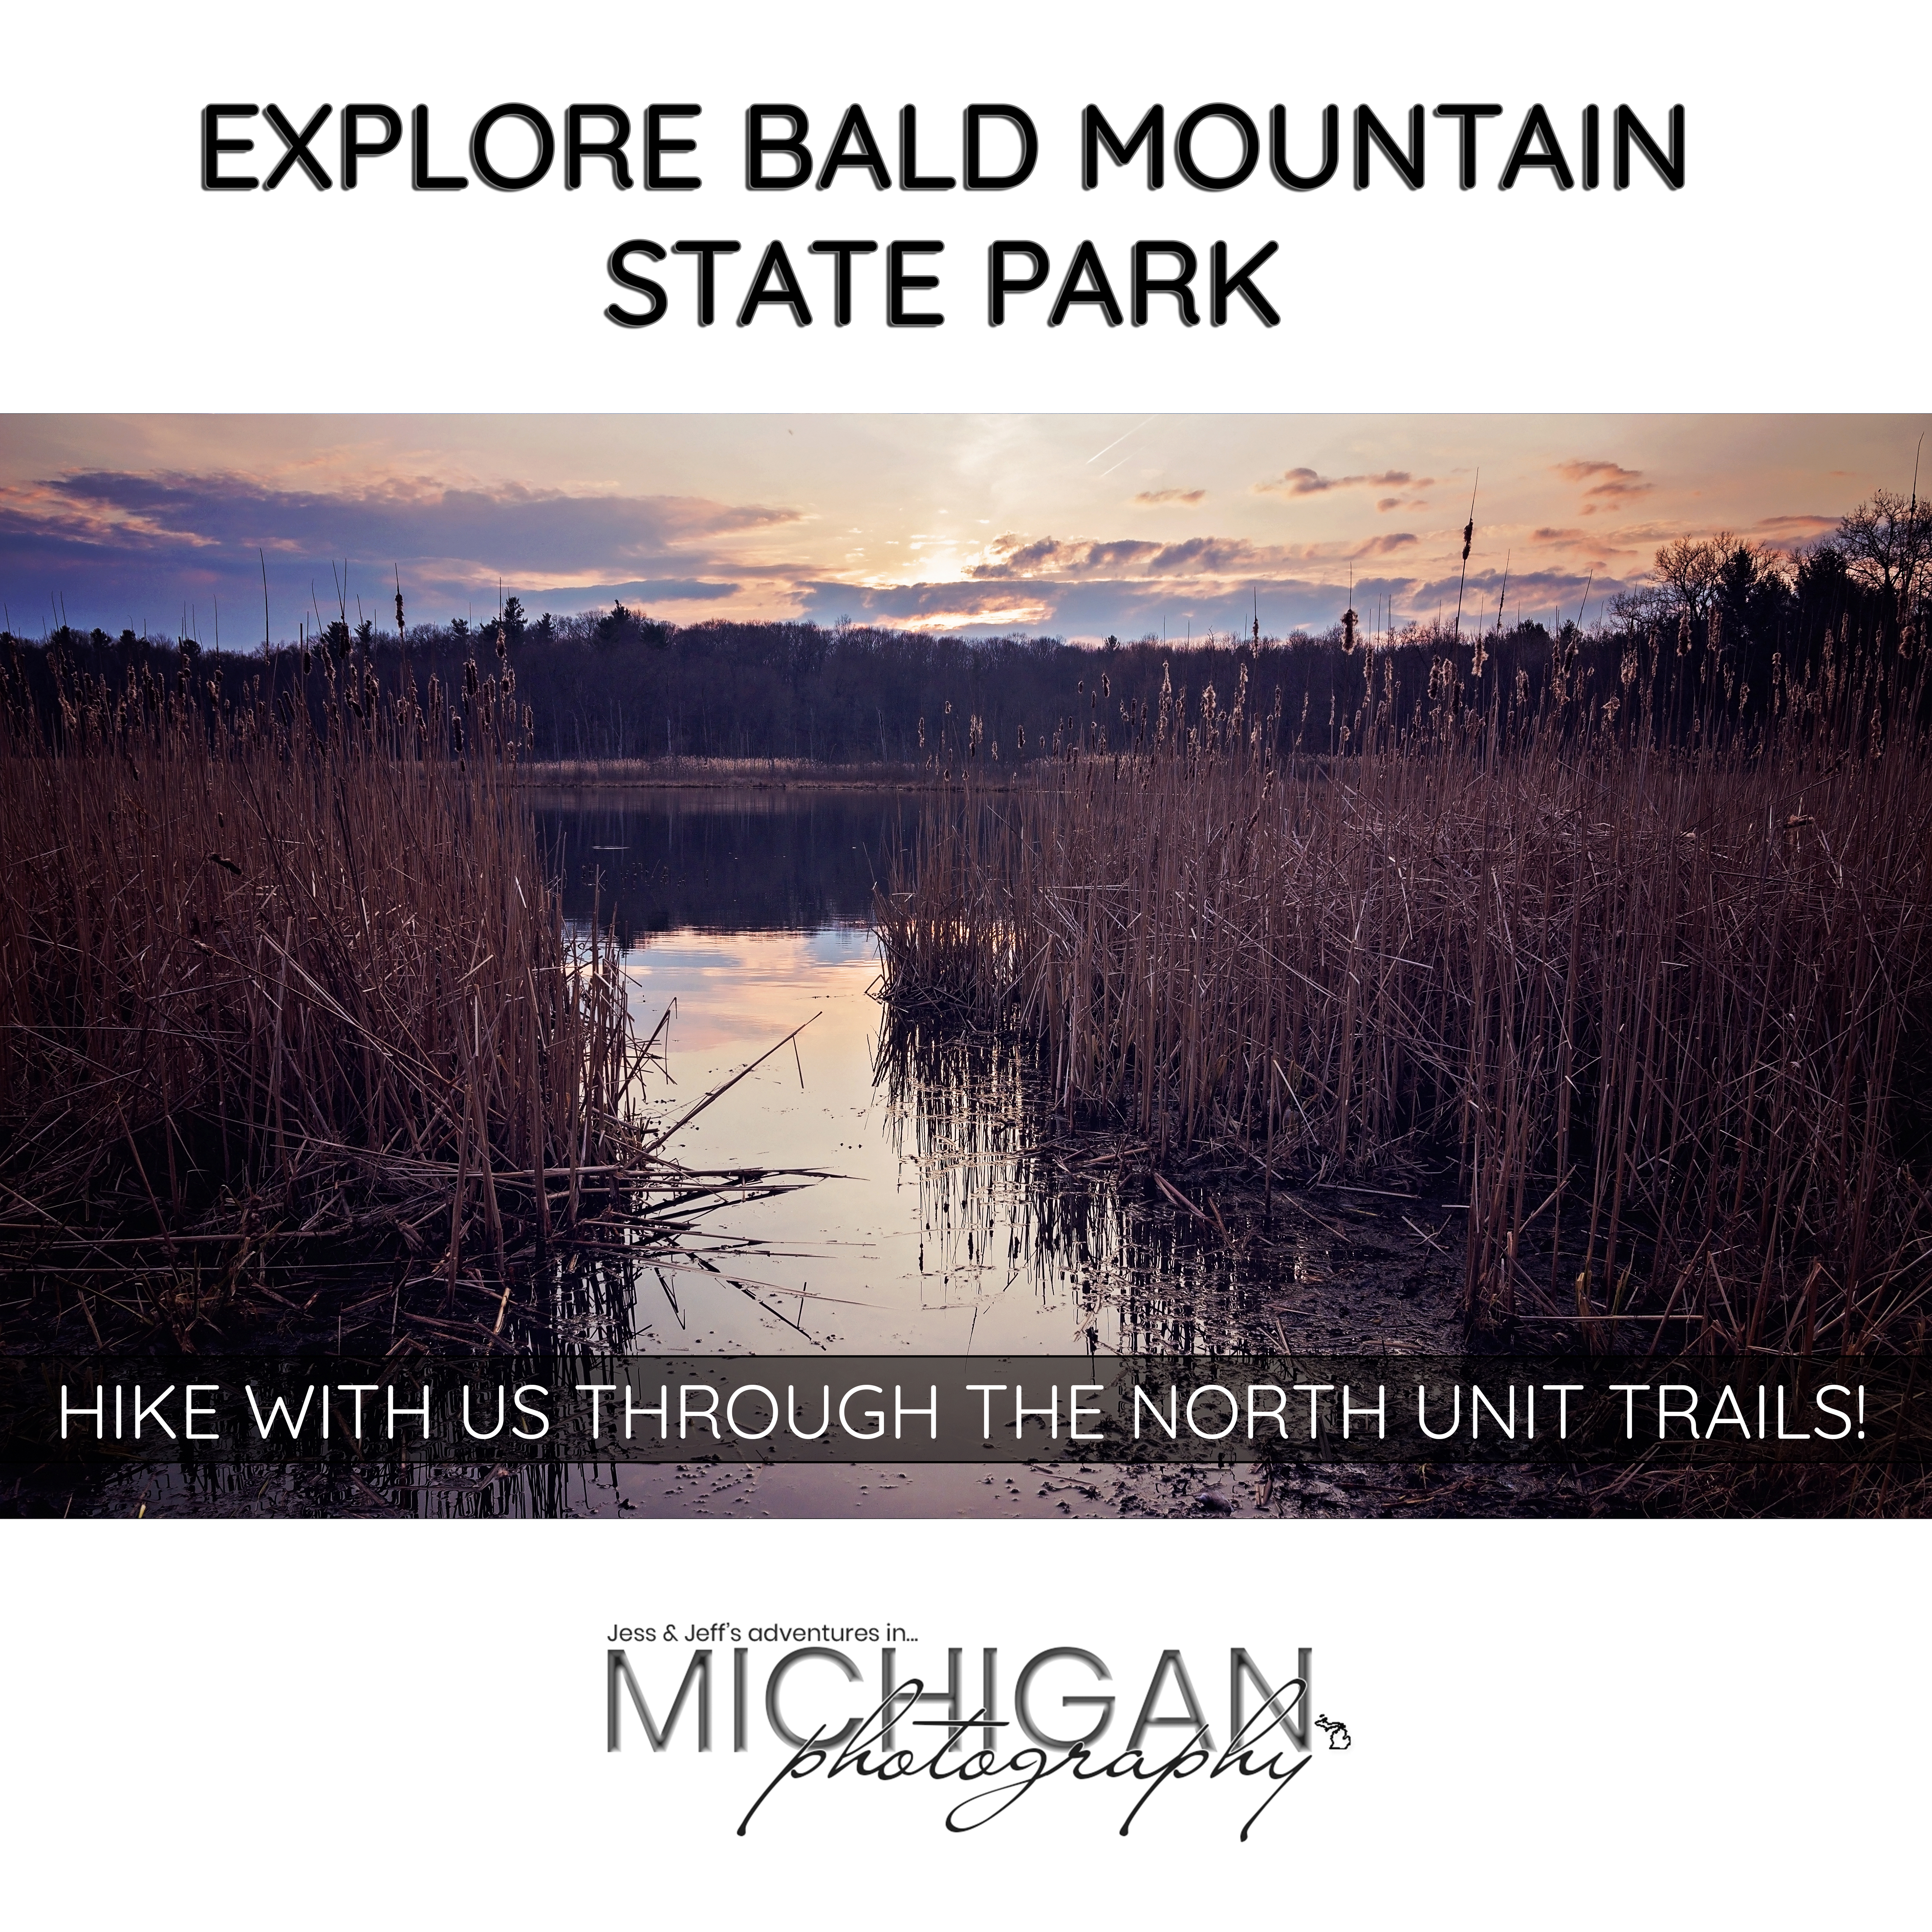 Explore Bald Mountain State Recreation Area with Jess & Jeff of Michigan Photography